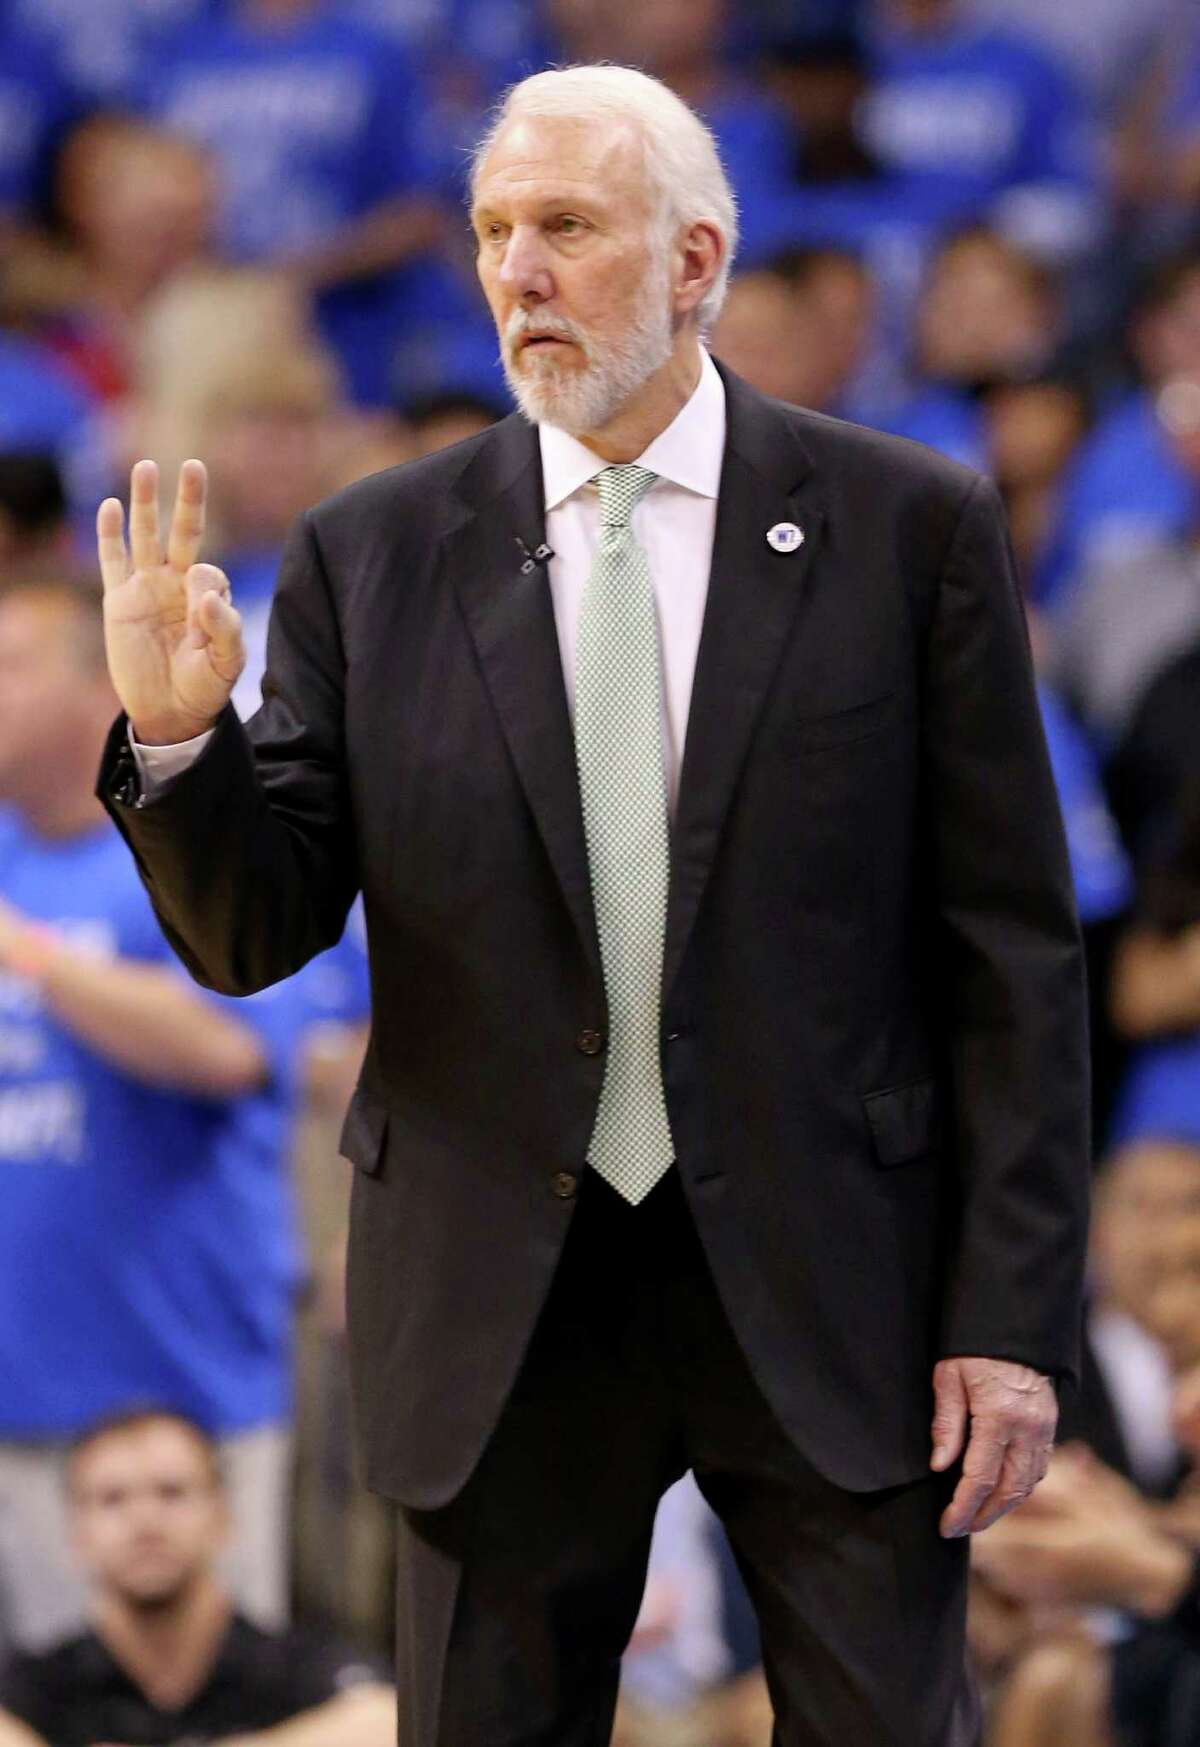 San Antonio Spurs head coach Gregg Popovich calls a play during first half action of Game 6 in the Western Conference semifinals against the Oklahoma City Thunder on May 12, 2016 at Chesapeake Energy Arena.